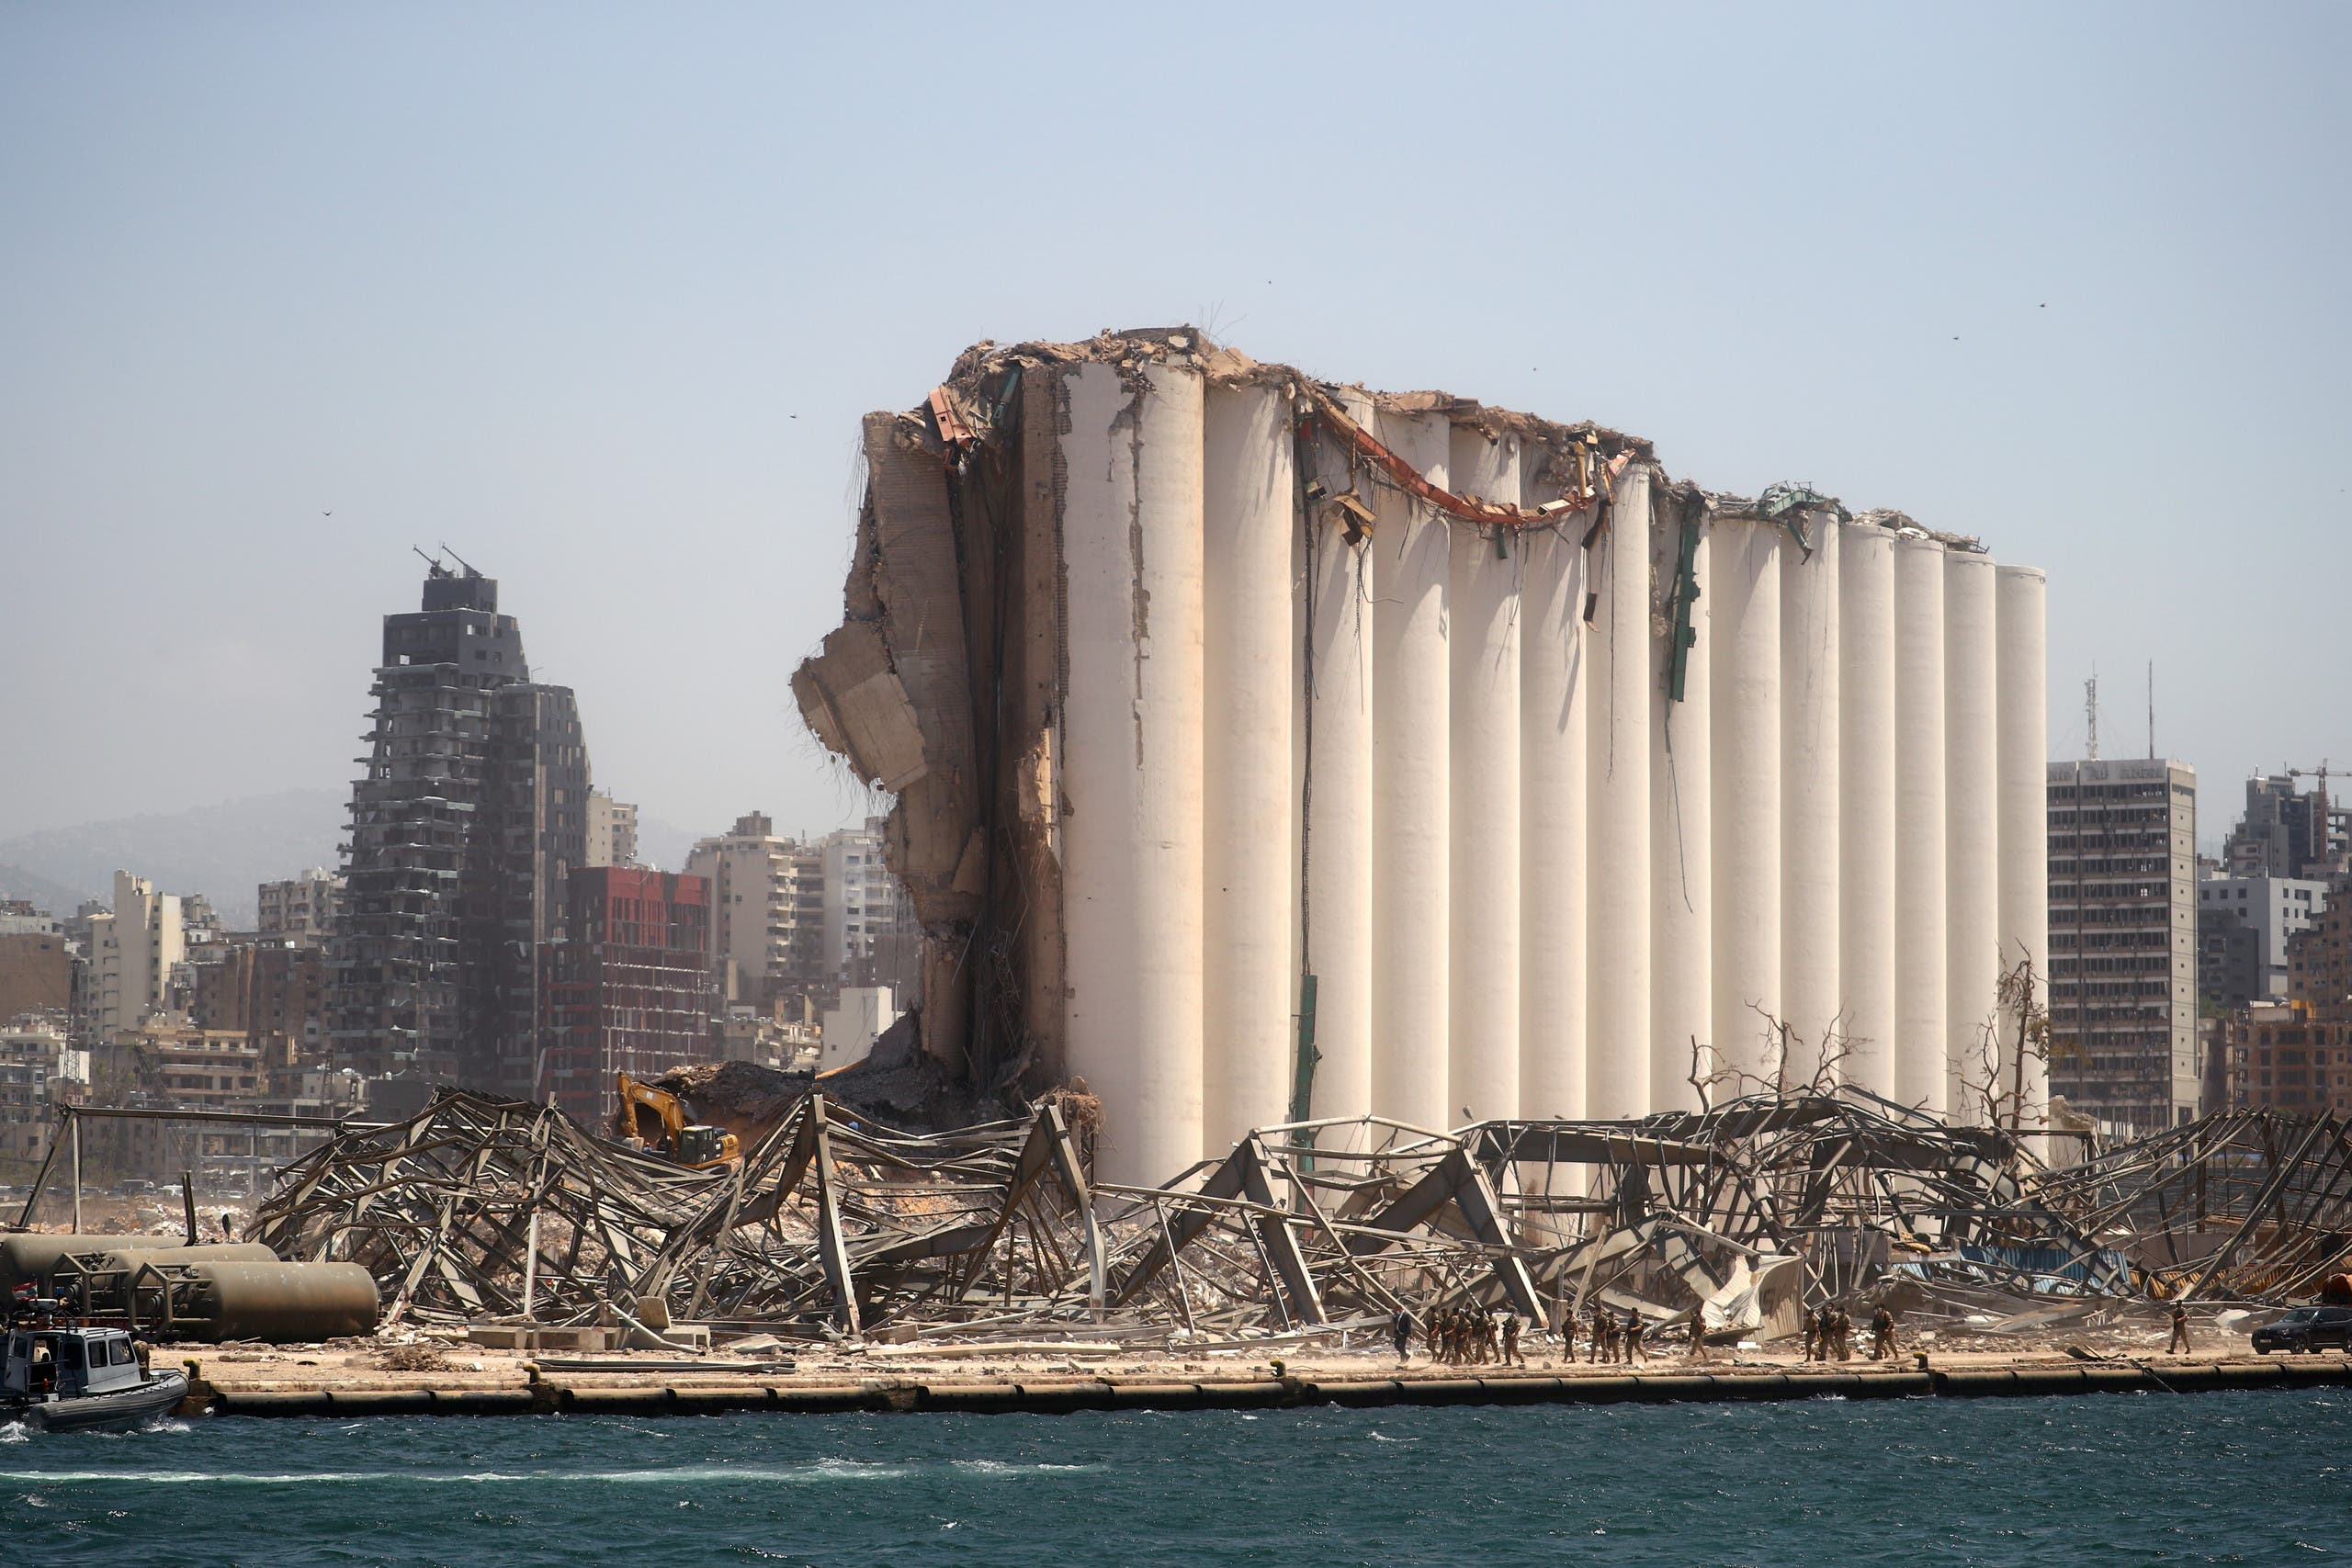 A general view shows the damaged grain silo following Tuesday's blast in Beirut's port area, Lebanon August 8, 2020. (Reuters)